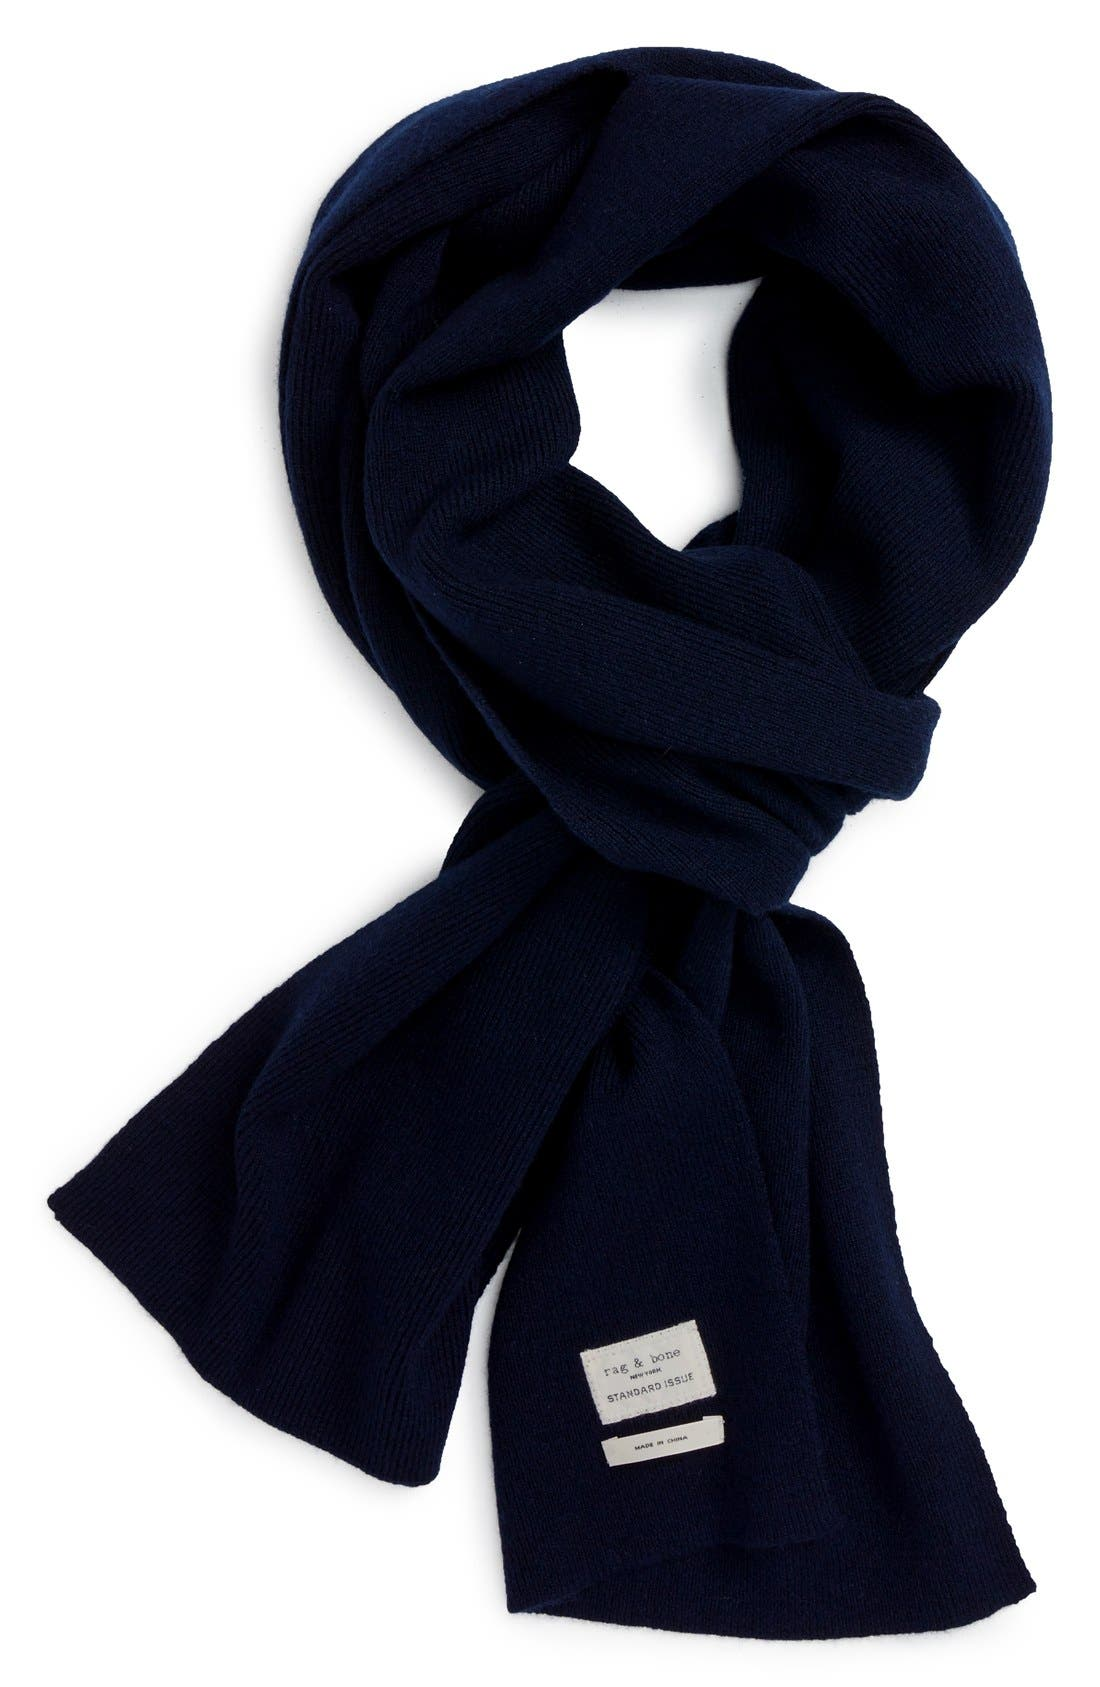 RAG & BONE Standard Issue Merino Wool Scarf